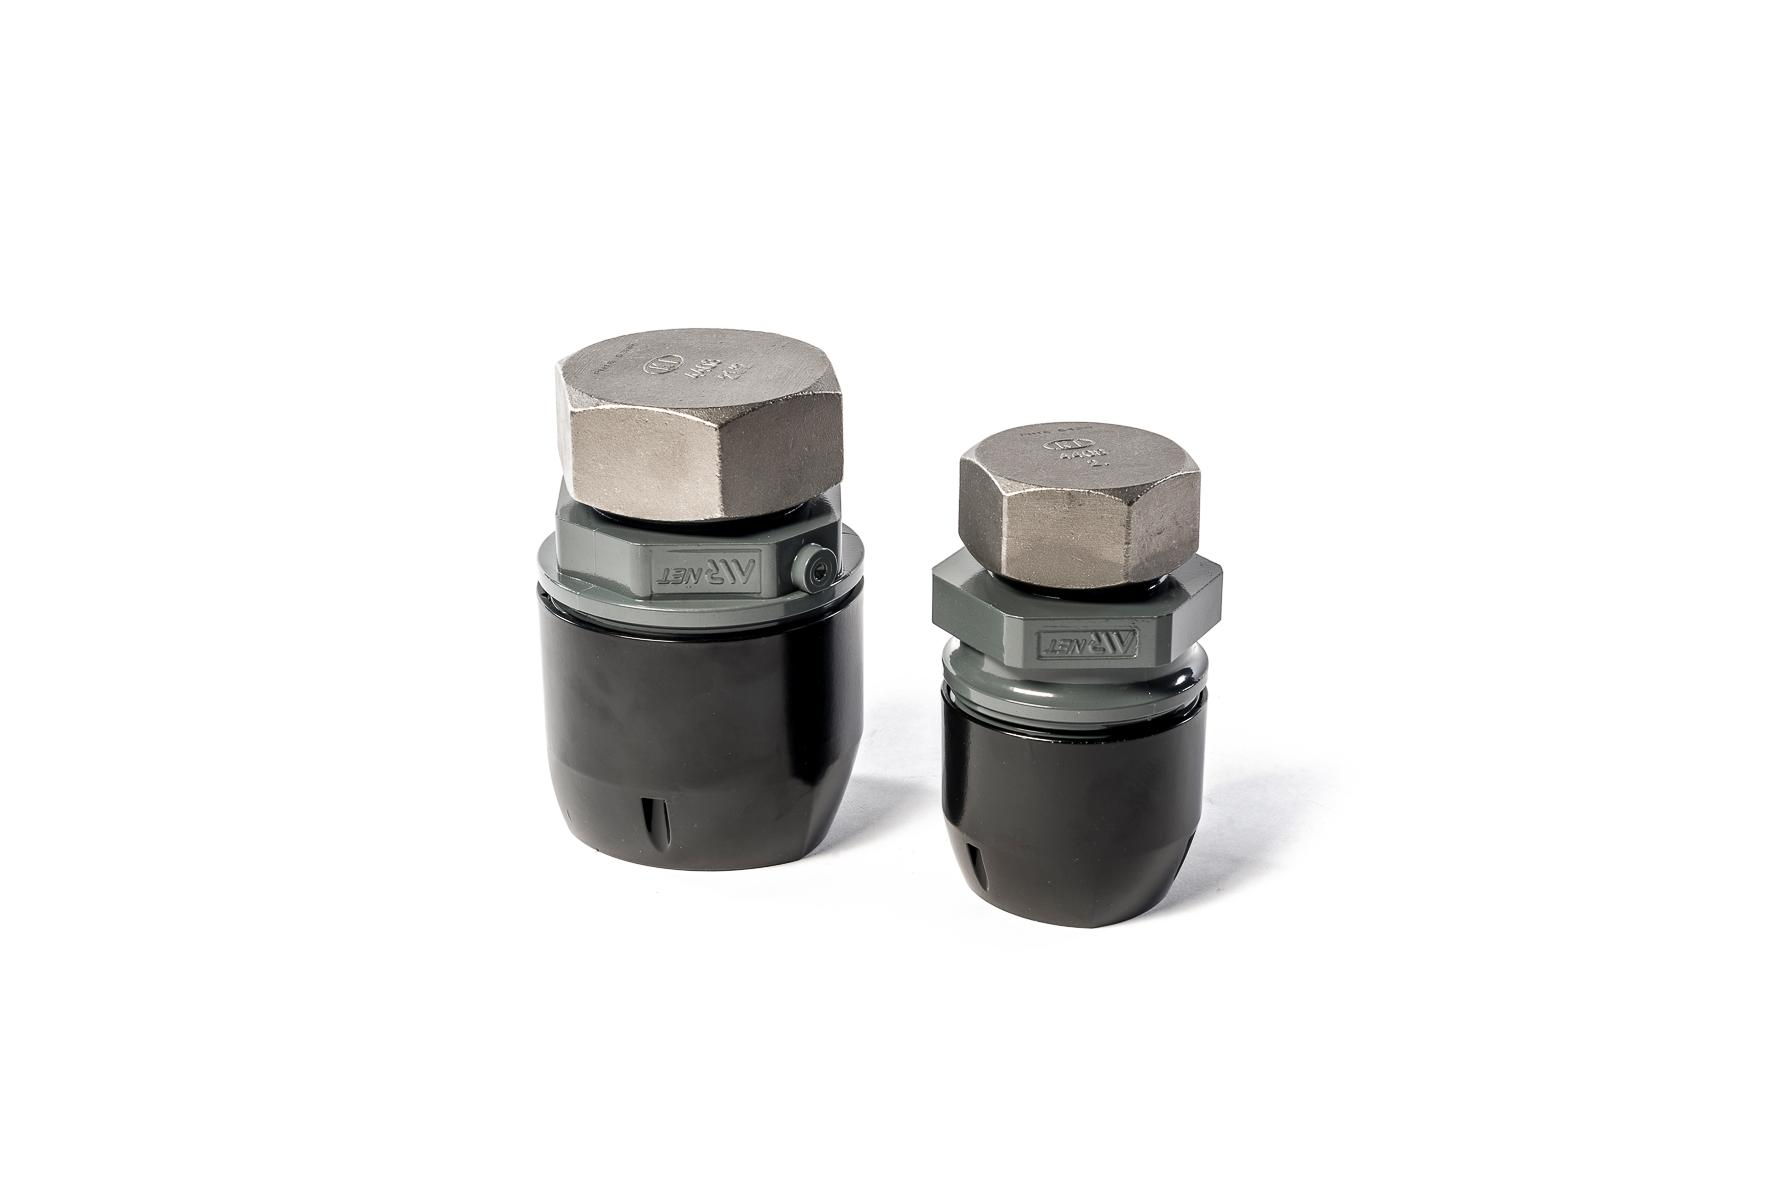 End Caps for Aluminum Piping Systems